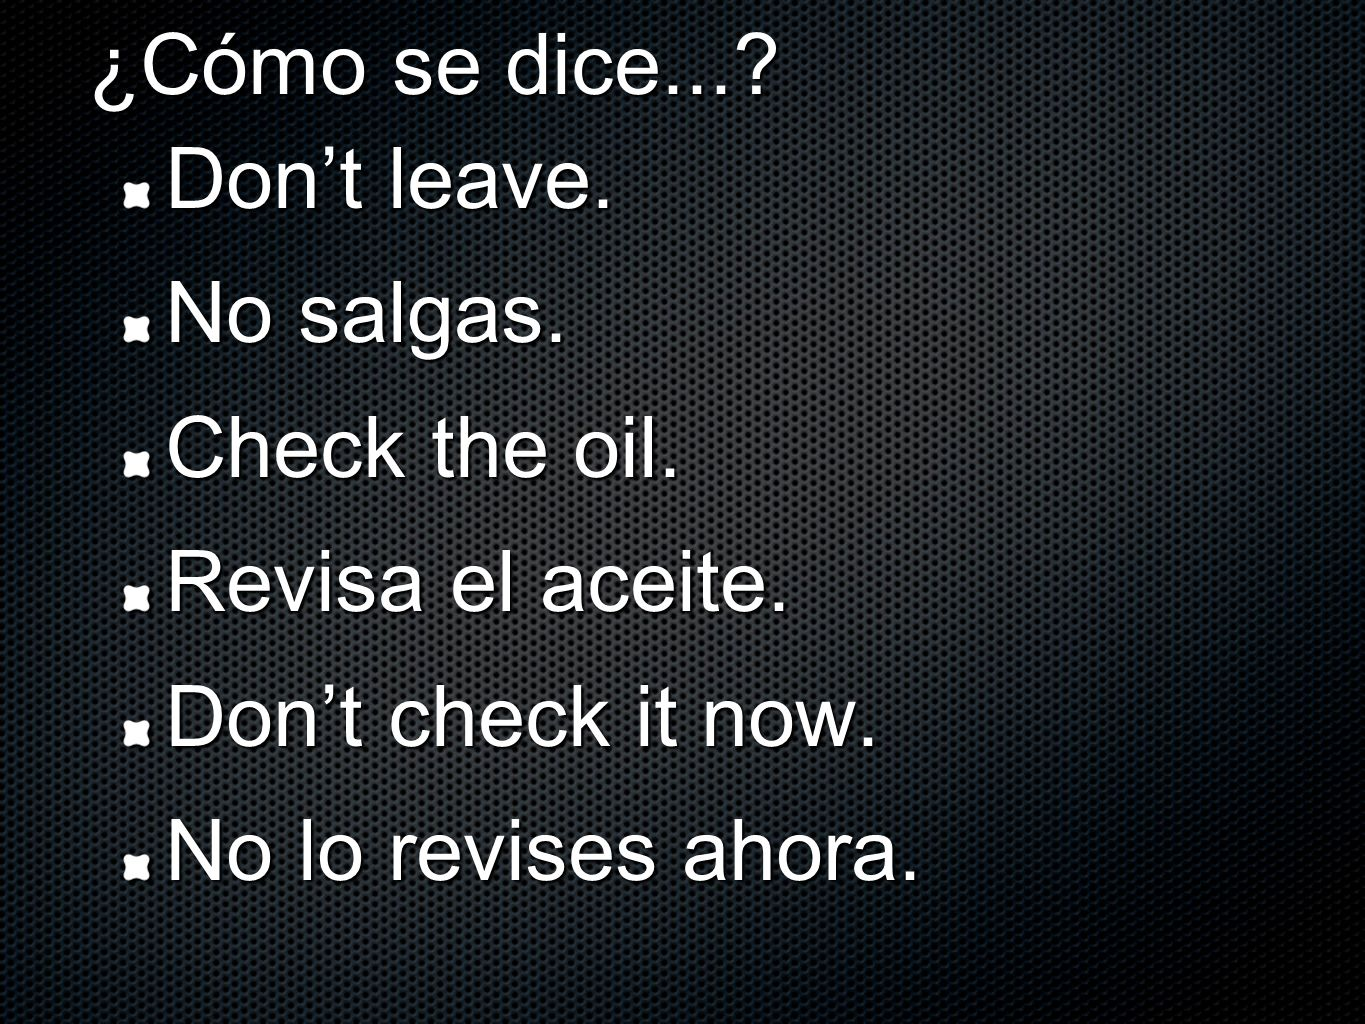 ¿Cómo se dice.... Dont leave. No salgas. Check the oil.